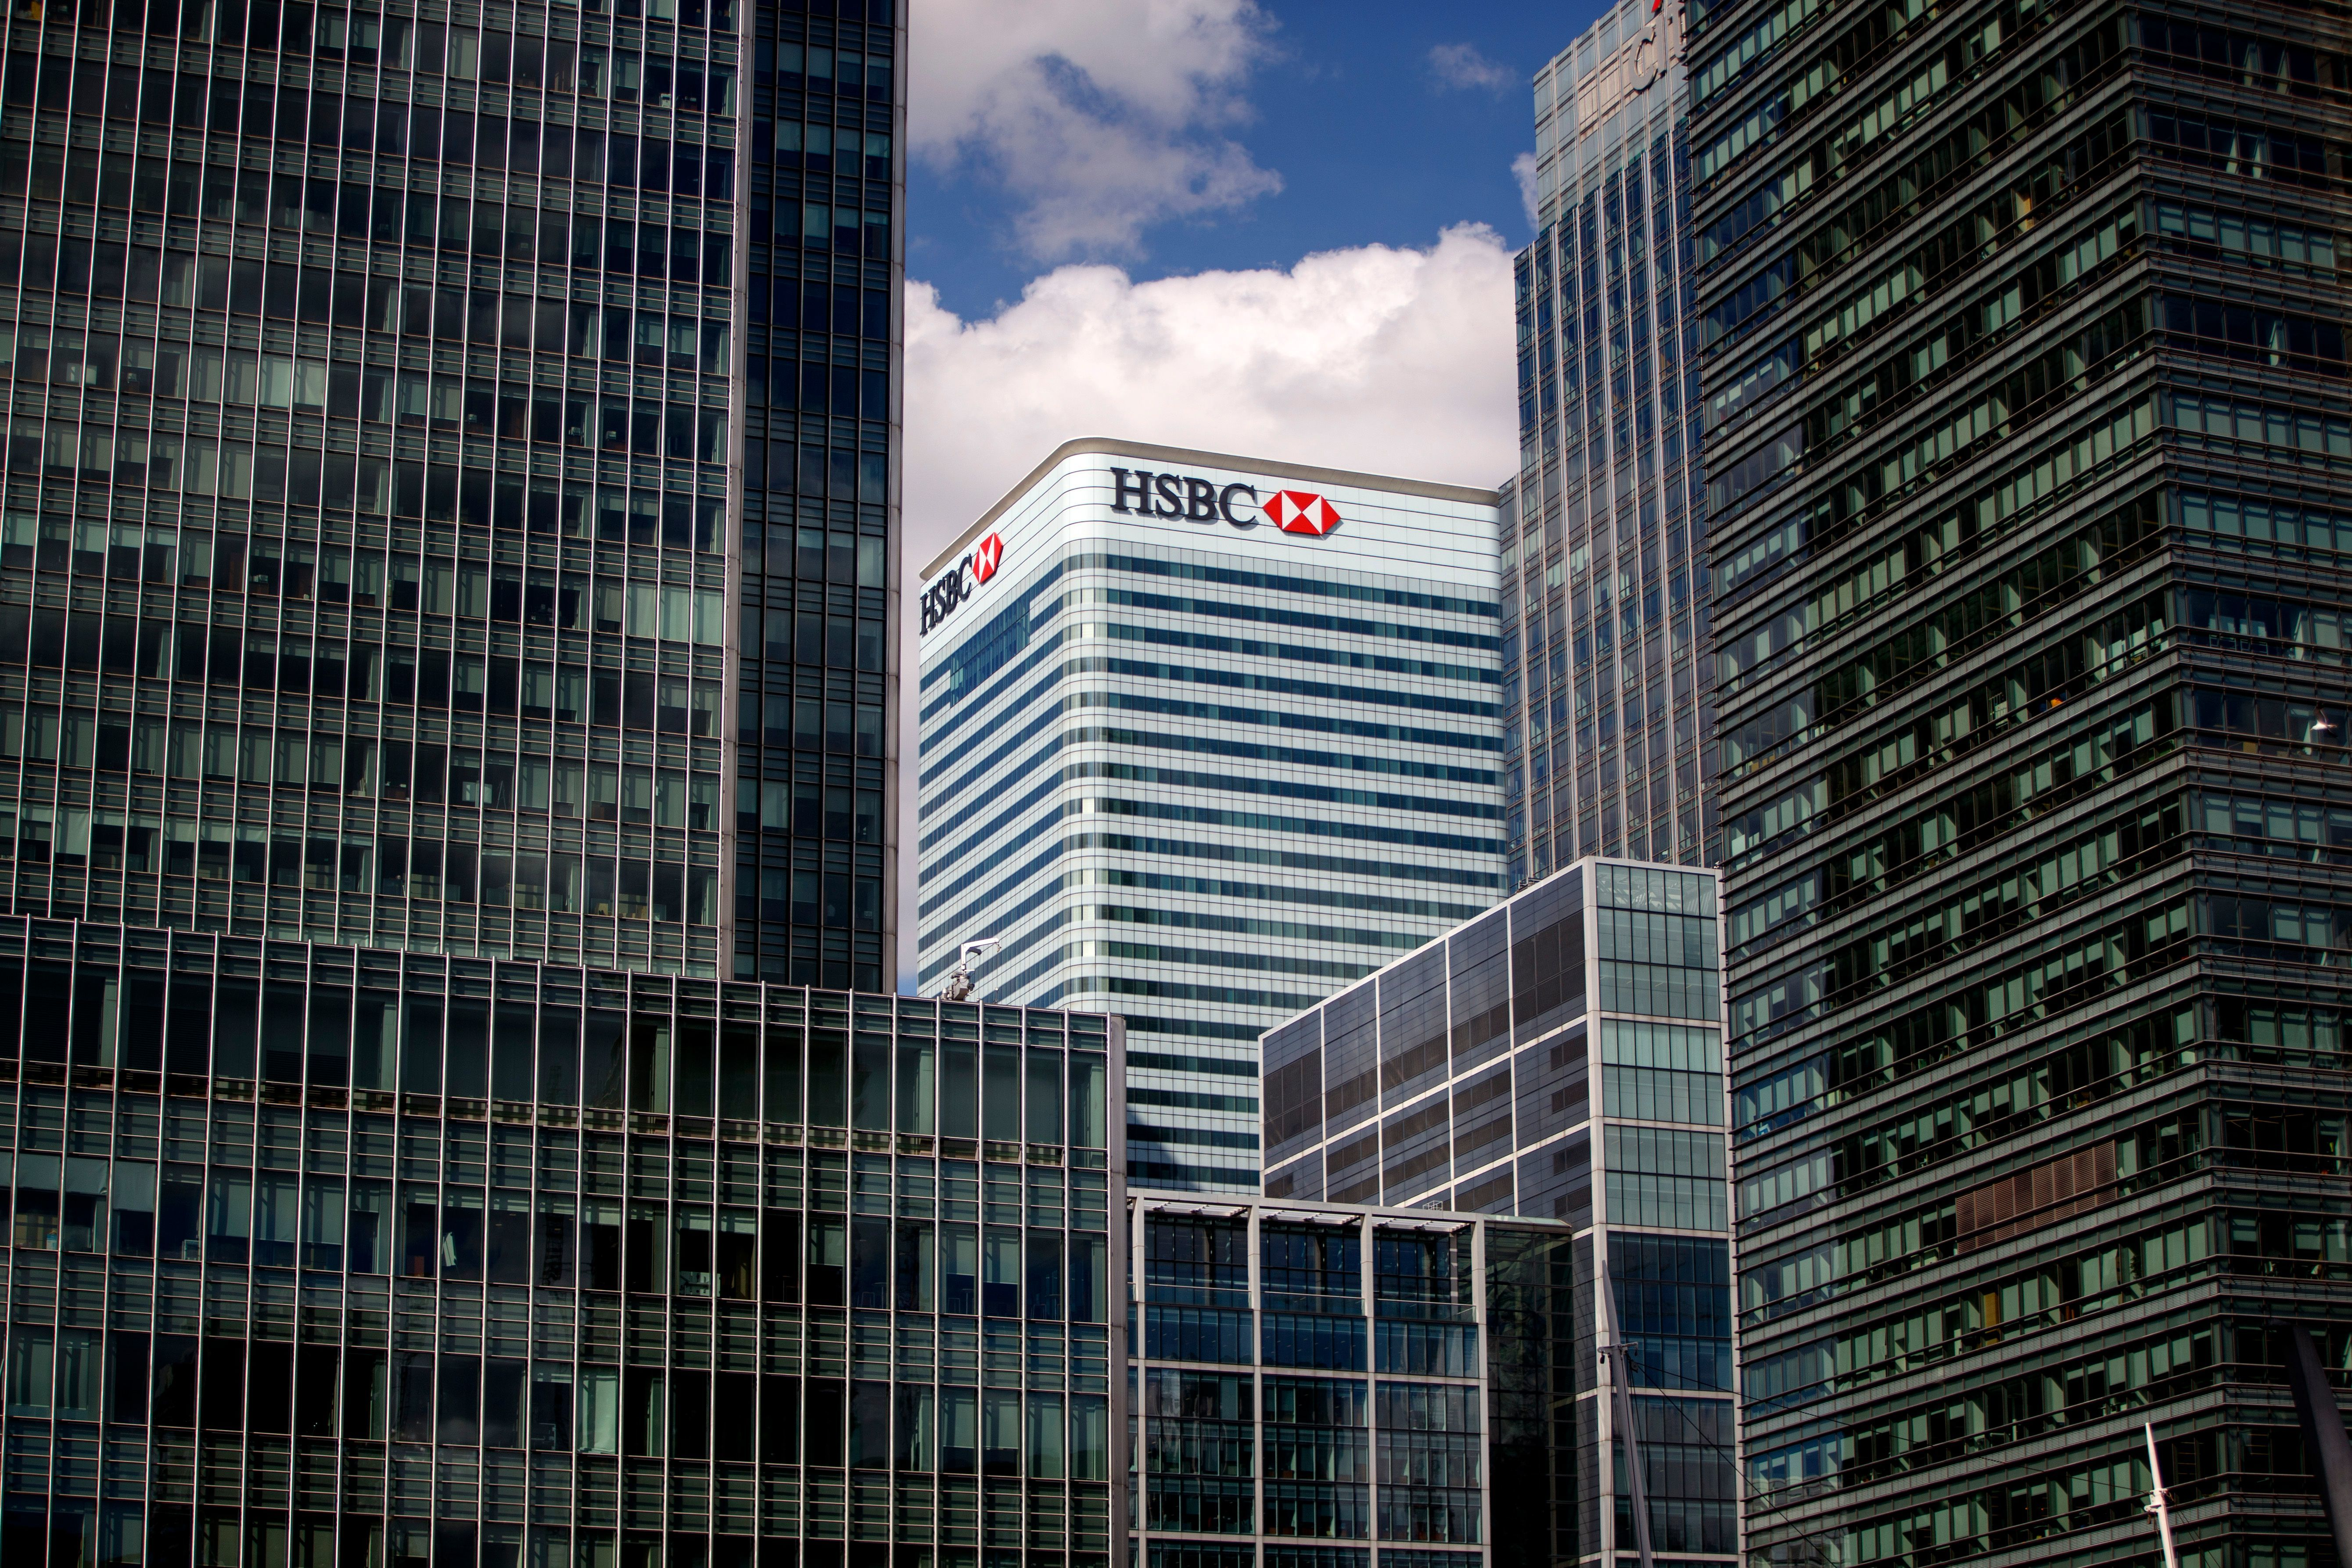 UK banks HSBC and RBS see trust as an advantage amid rise of fintech